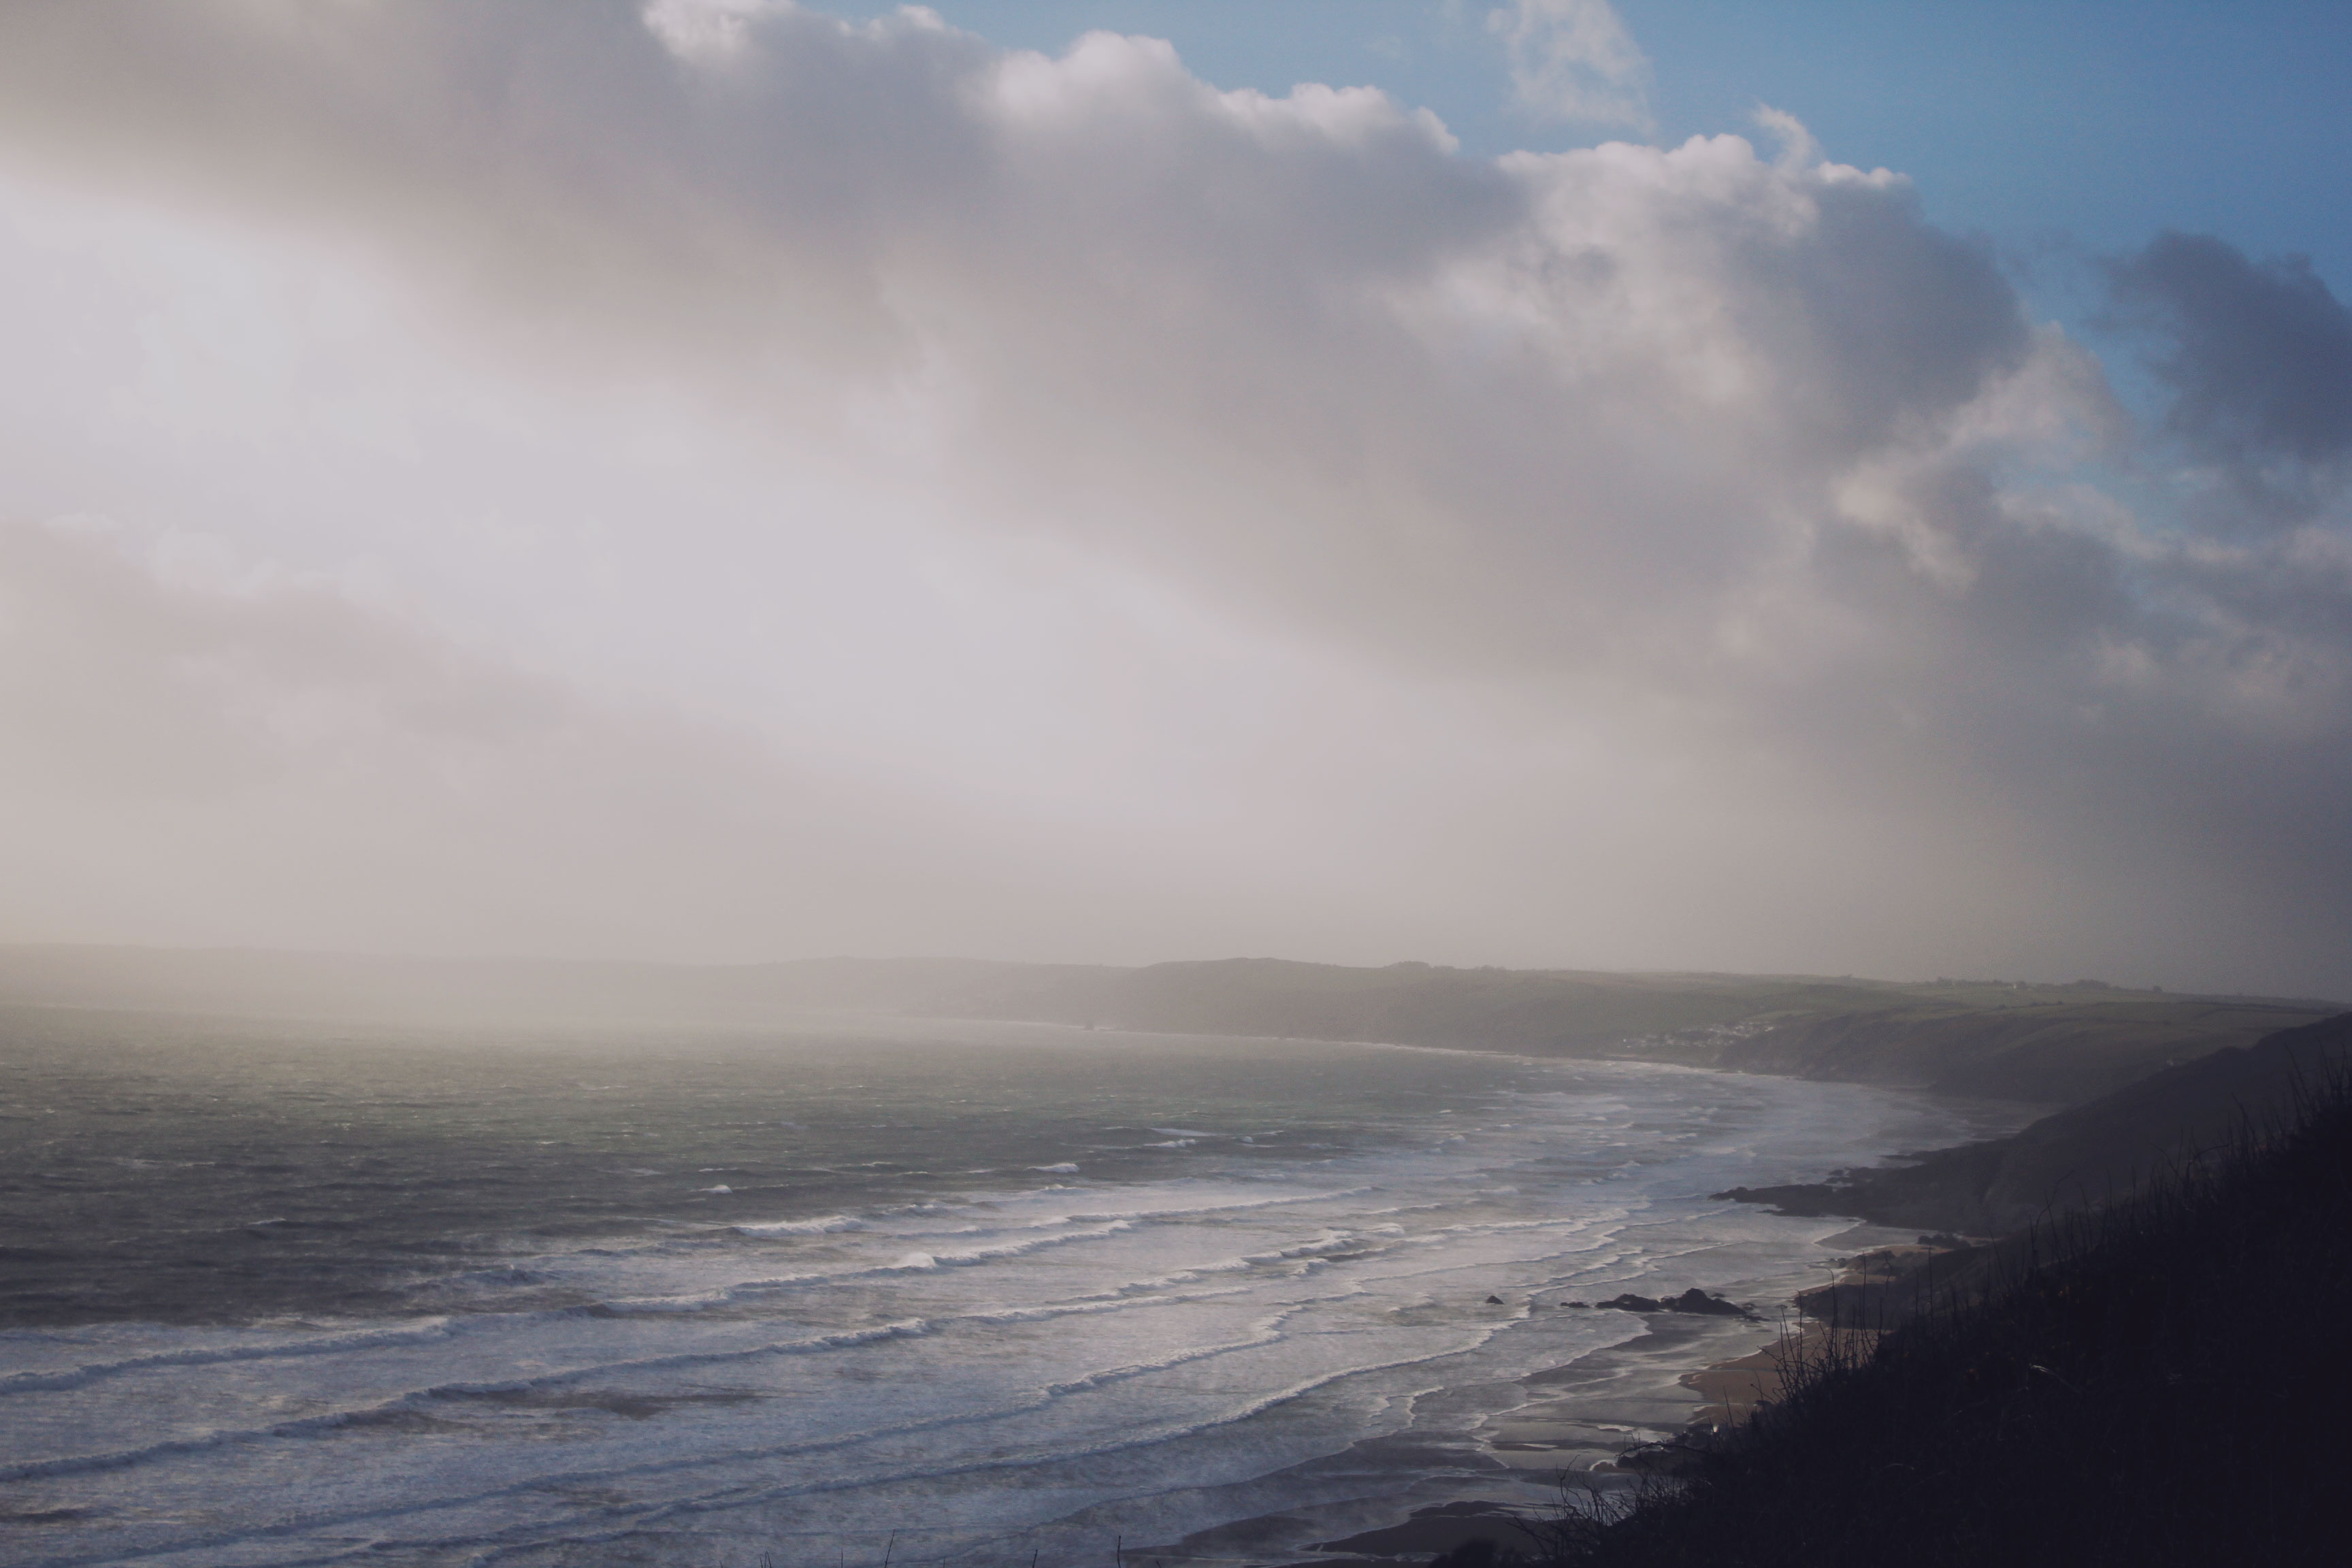 View from the cliffs over Whitsand Bay, Cornwall